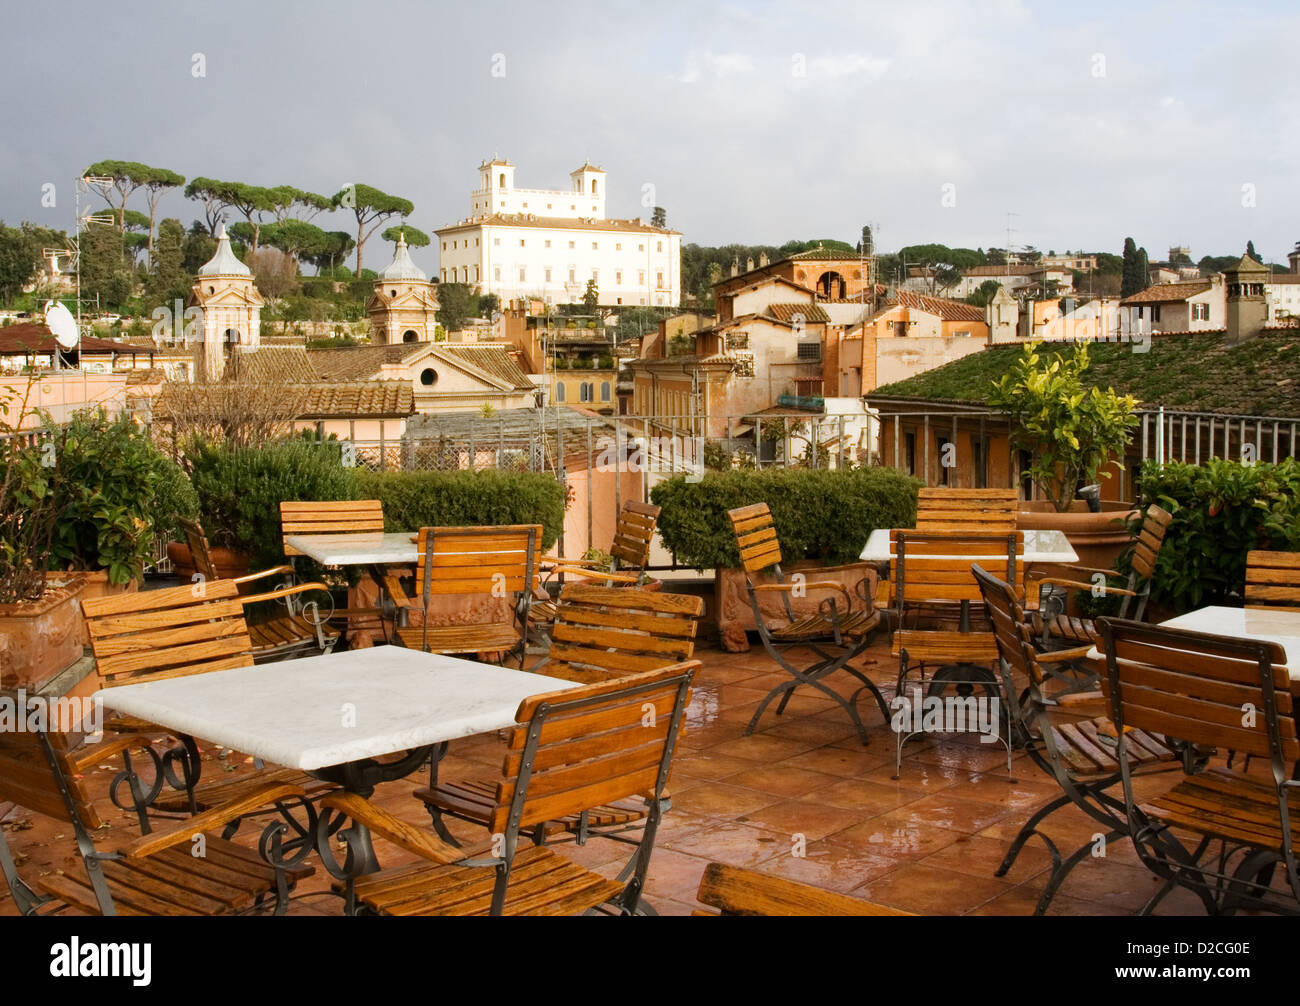 Garden Cafe Stock Photos & Garden Cafe Stock Images - Alamy